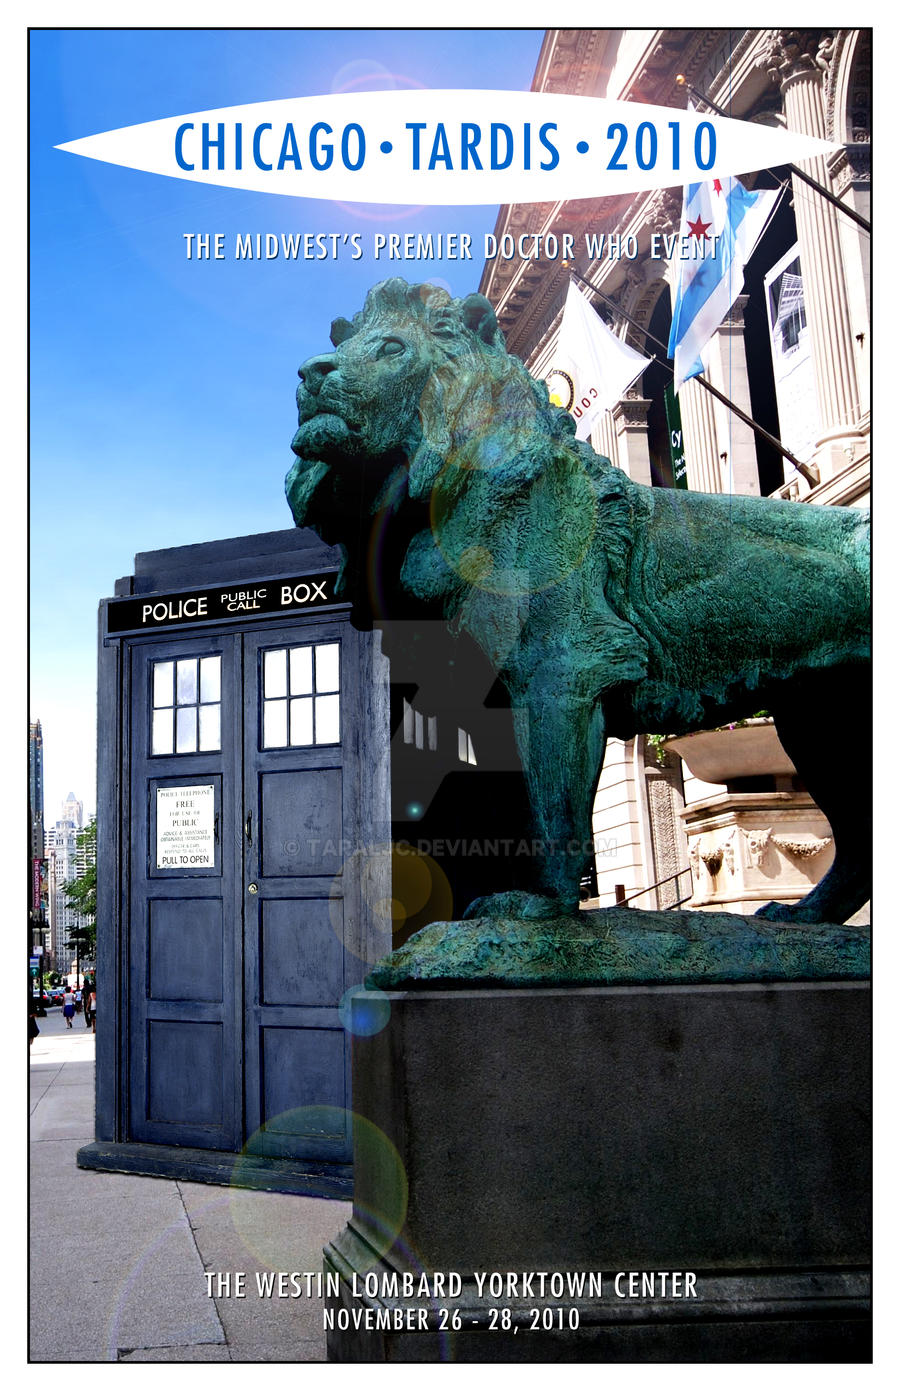 Chicago TARDIS 2010 cover mk1 by TaraLJC